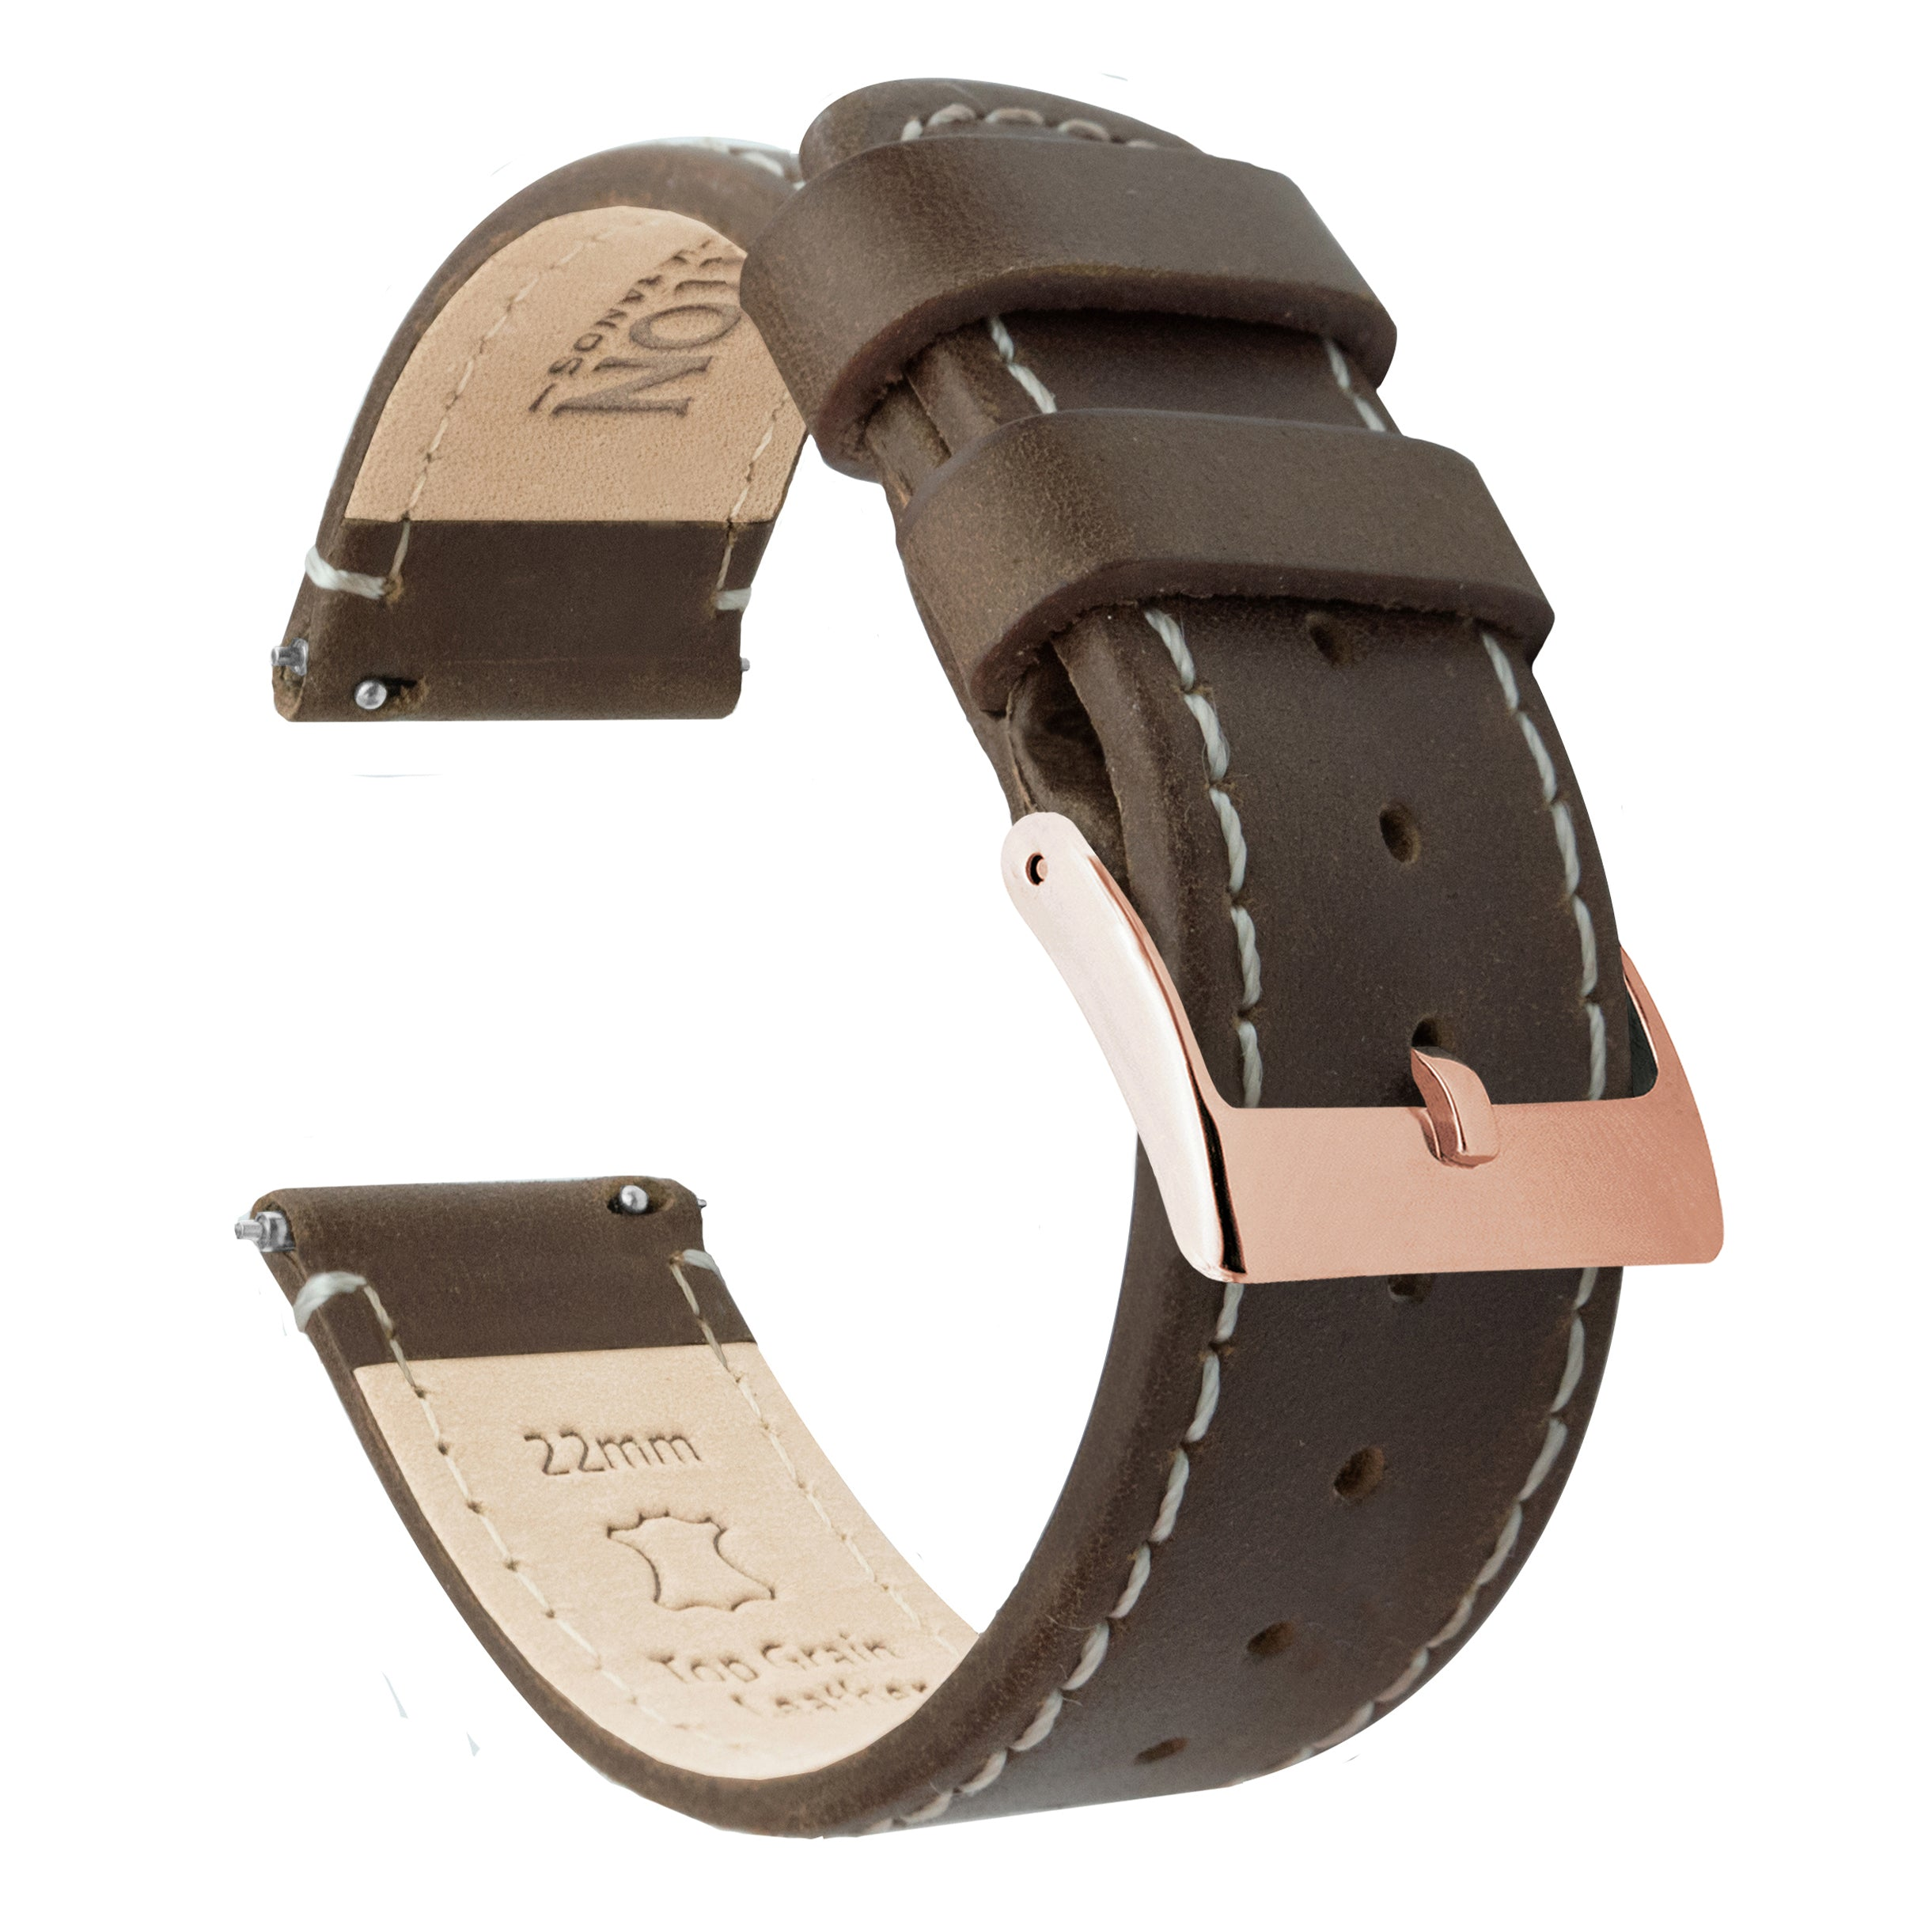 Top Grain Leather Watch Band Saddle Leather Watch Strap